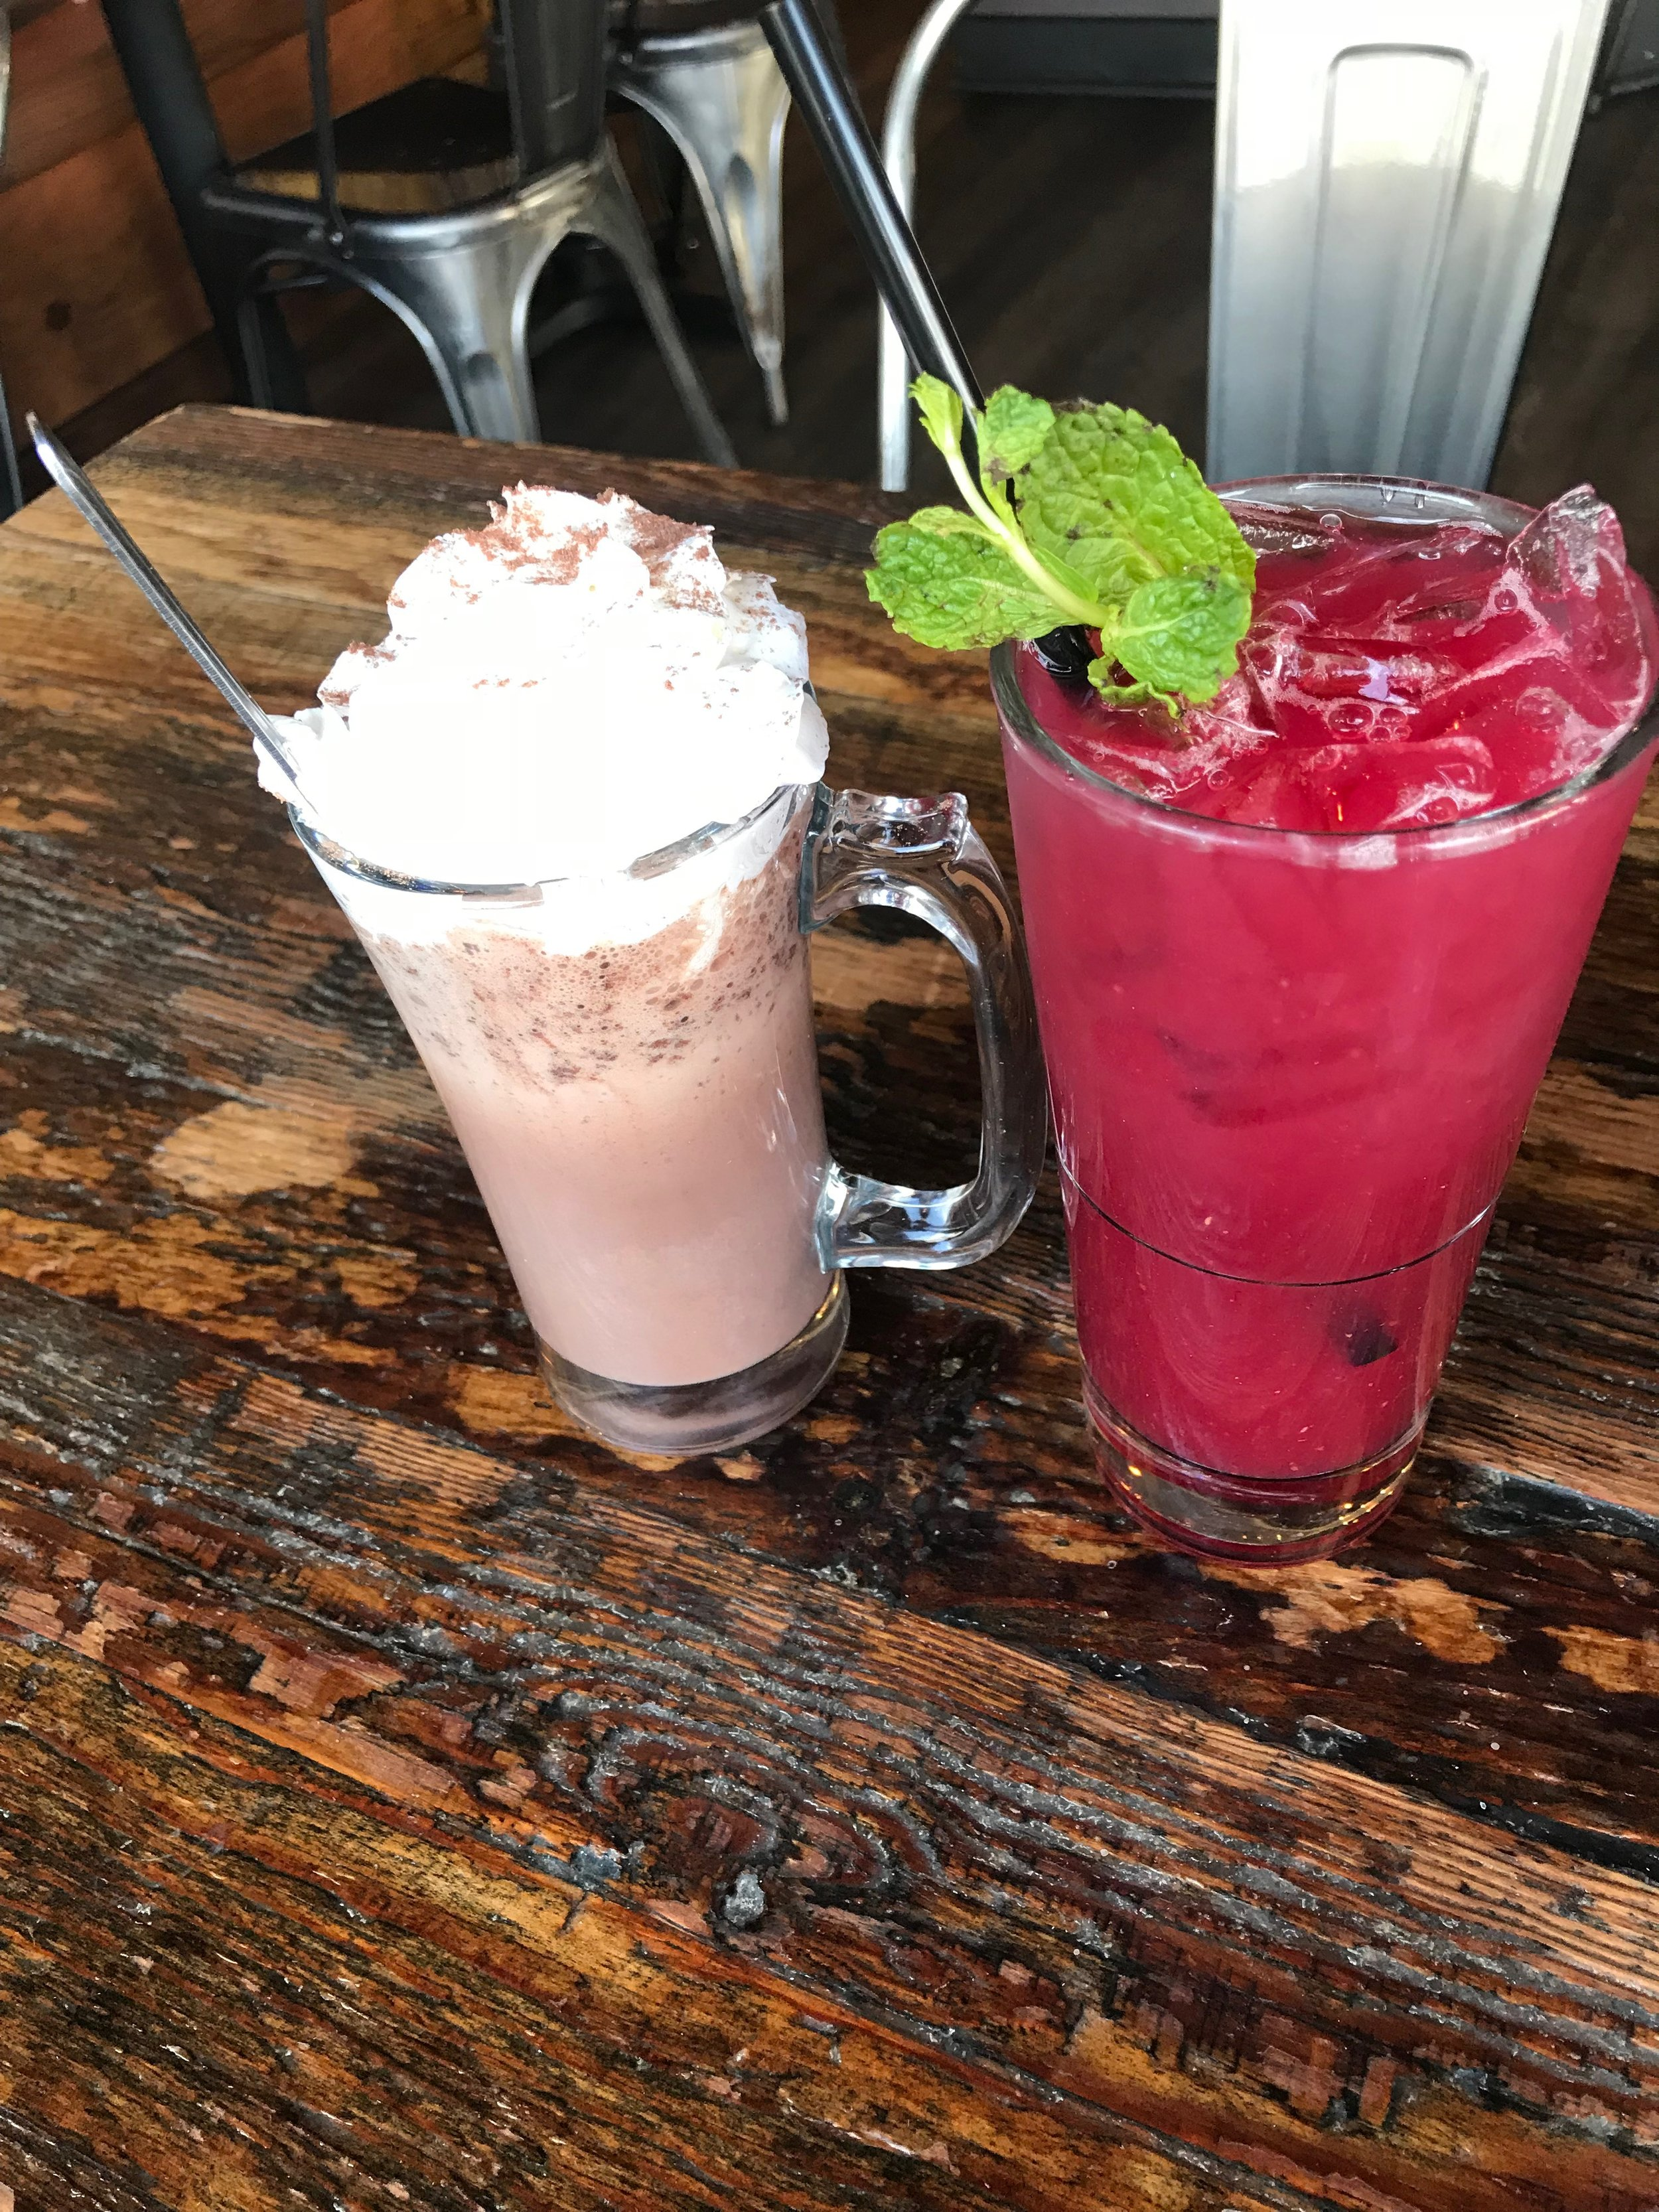 Our drinks: Hot Chocolate on the left, Raspberry Lemonade on the right